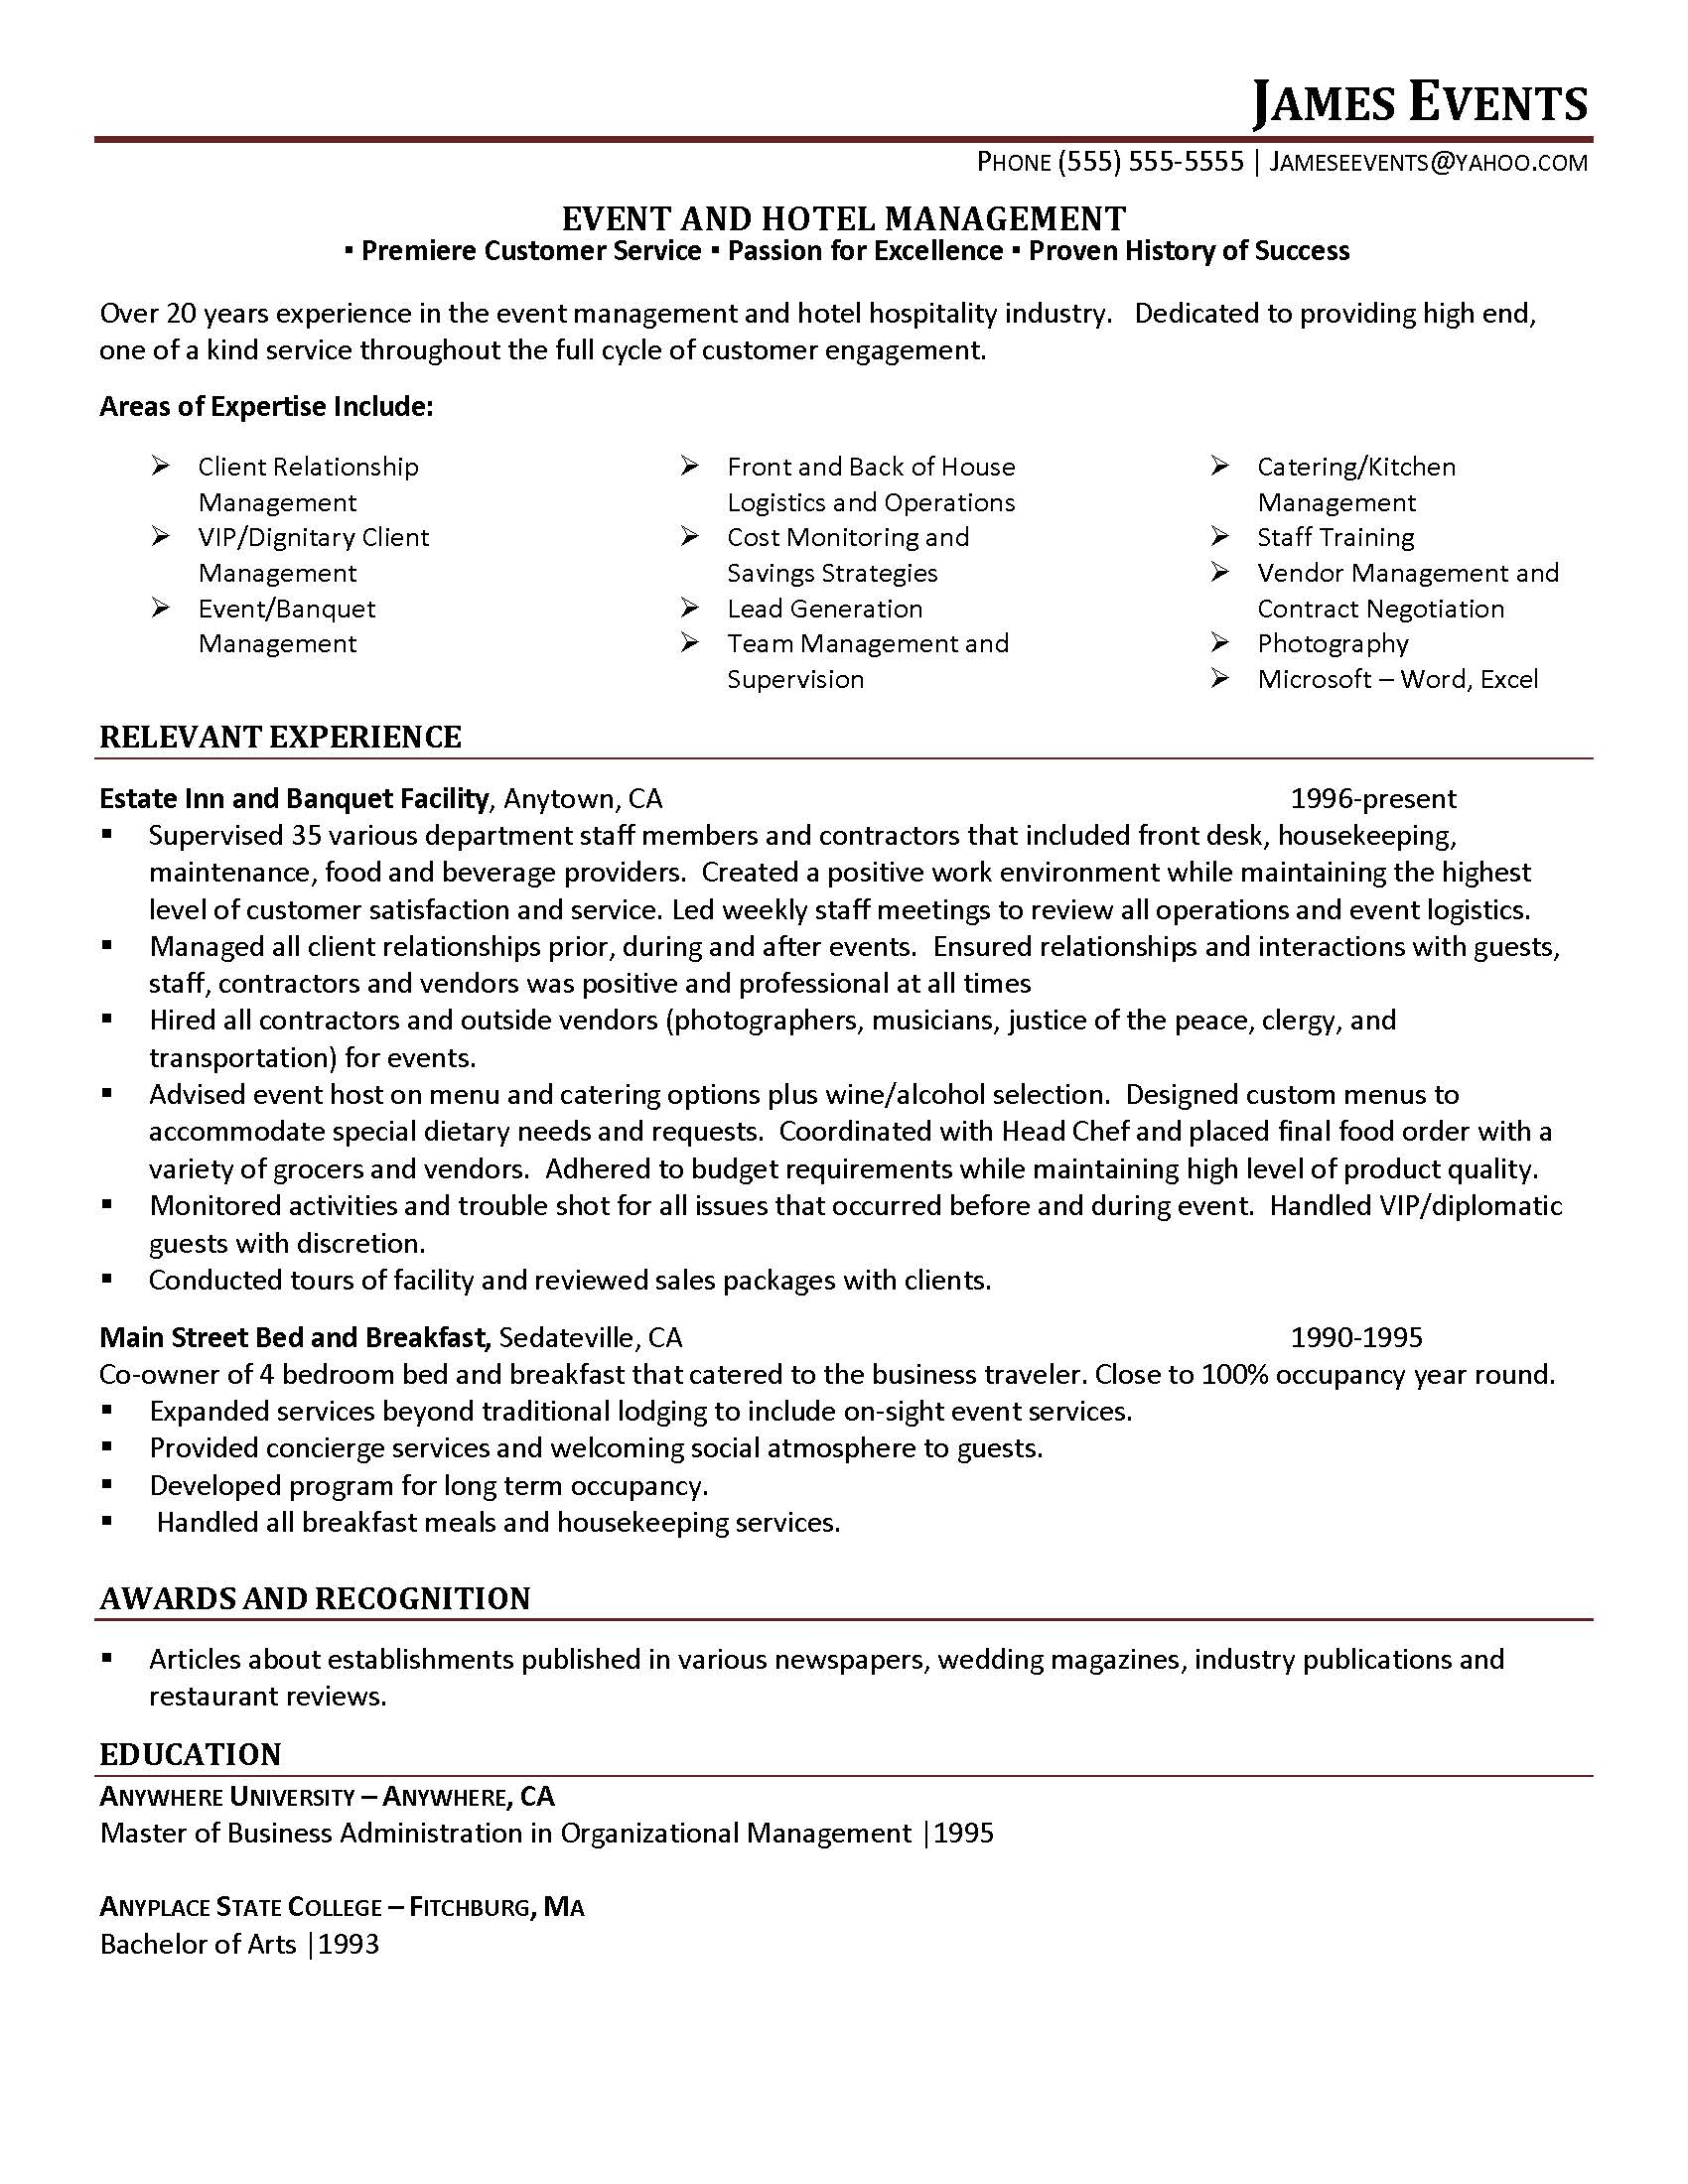 Marketing Director Resume Marketing Director Resume Marketing